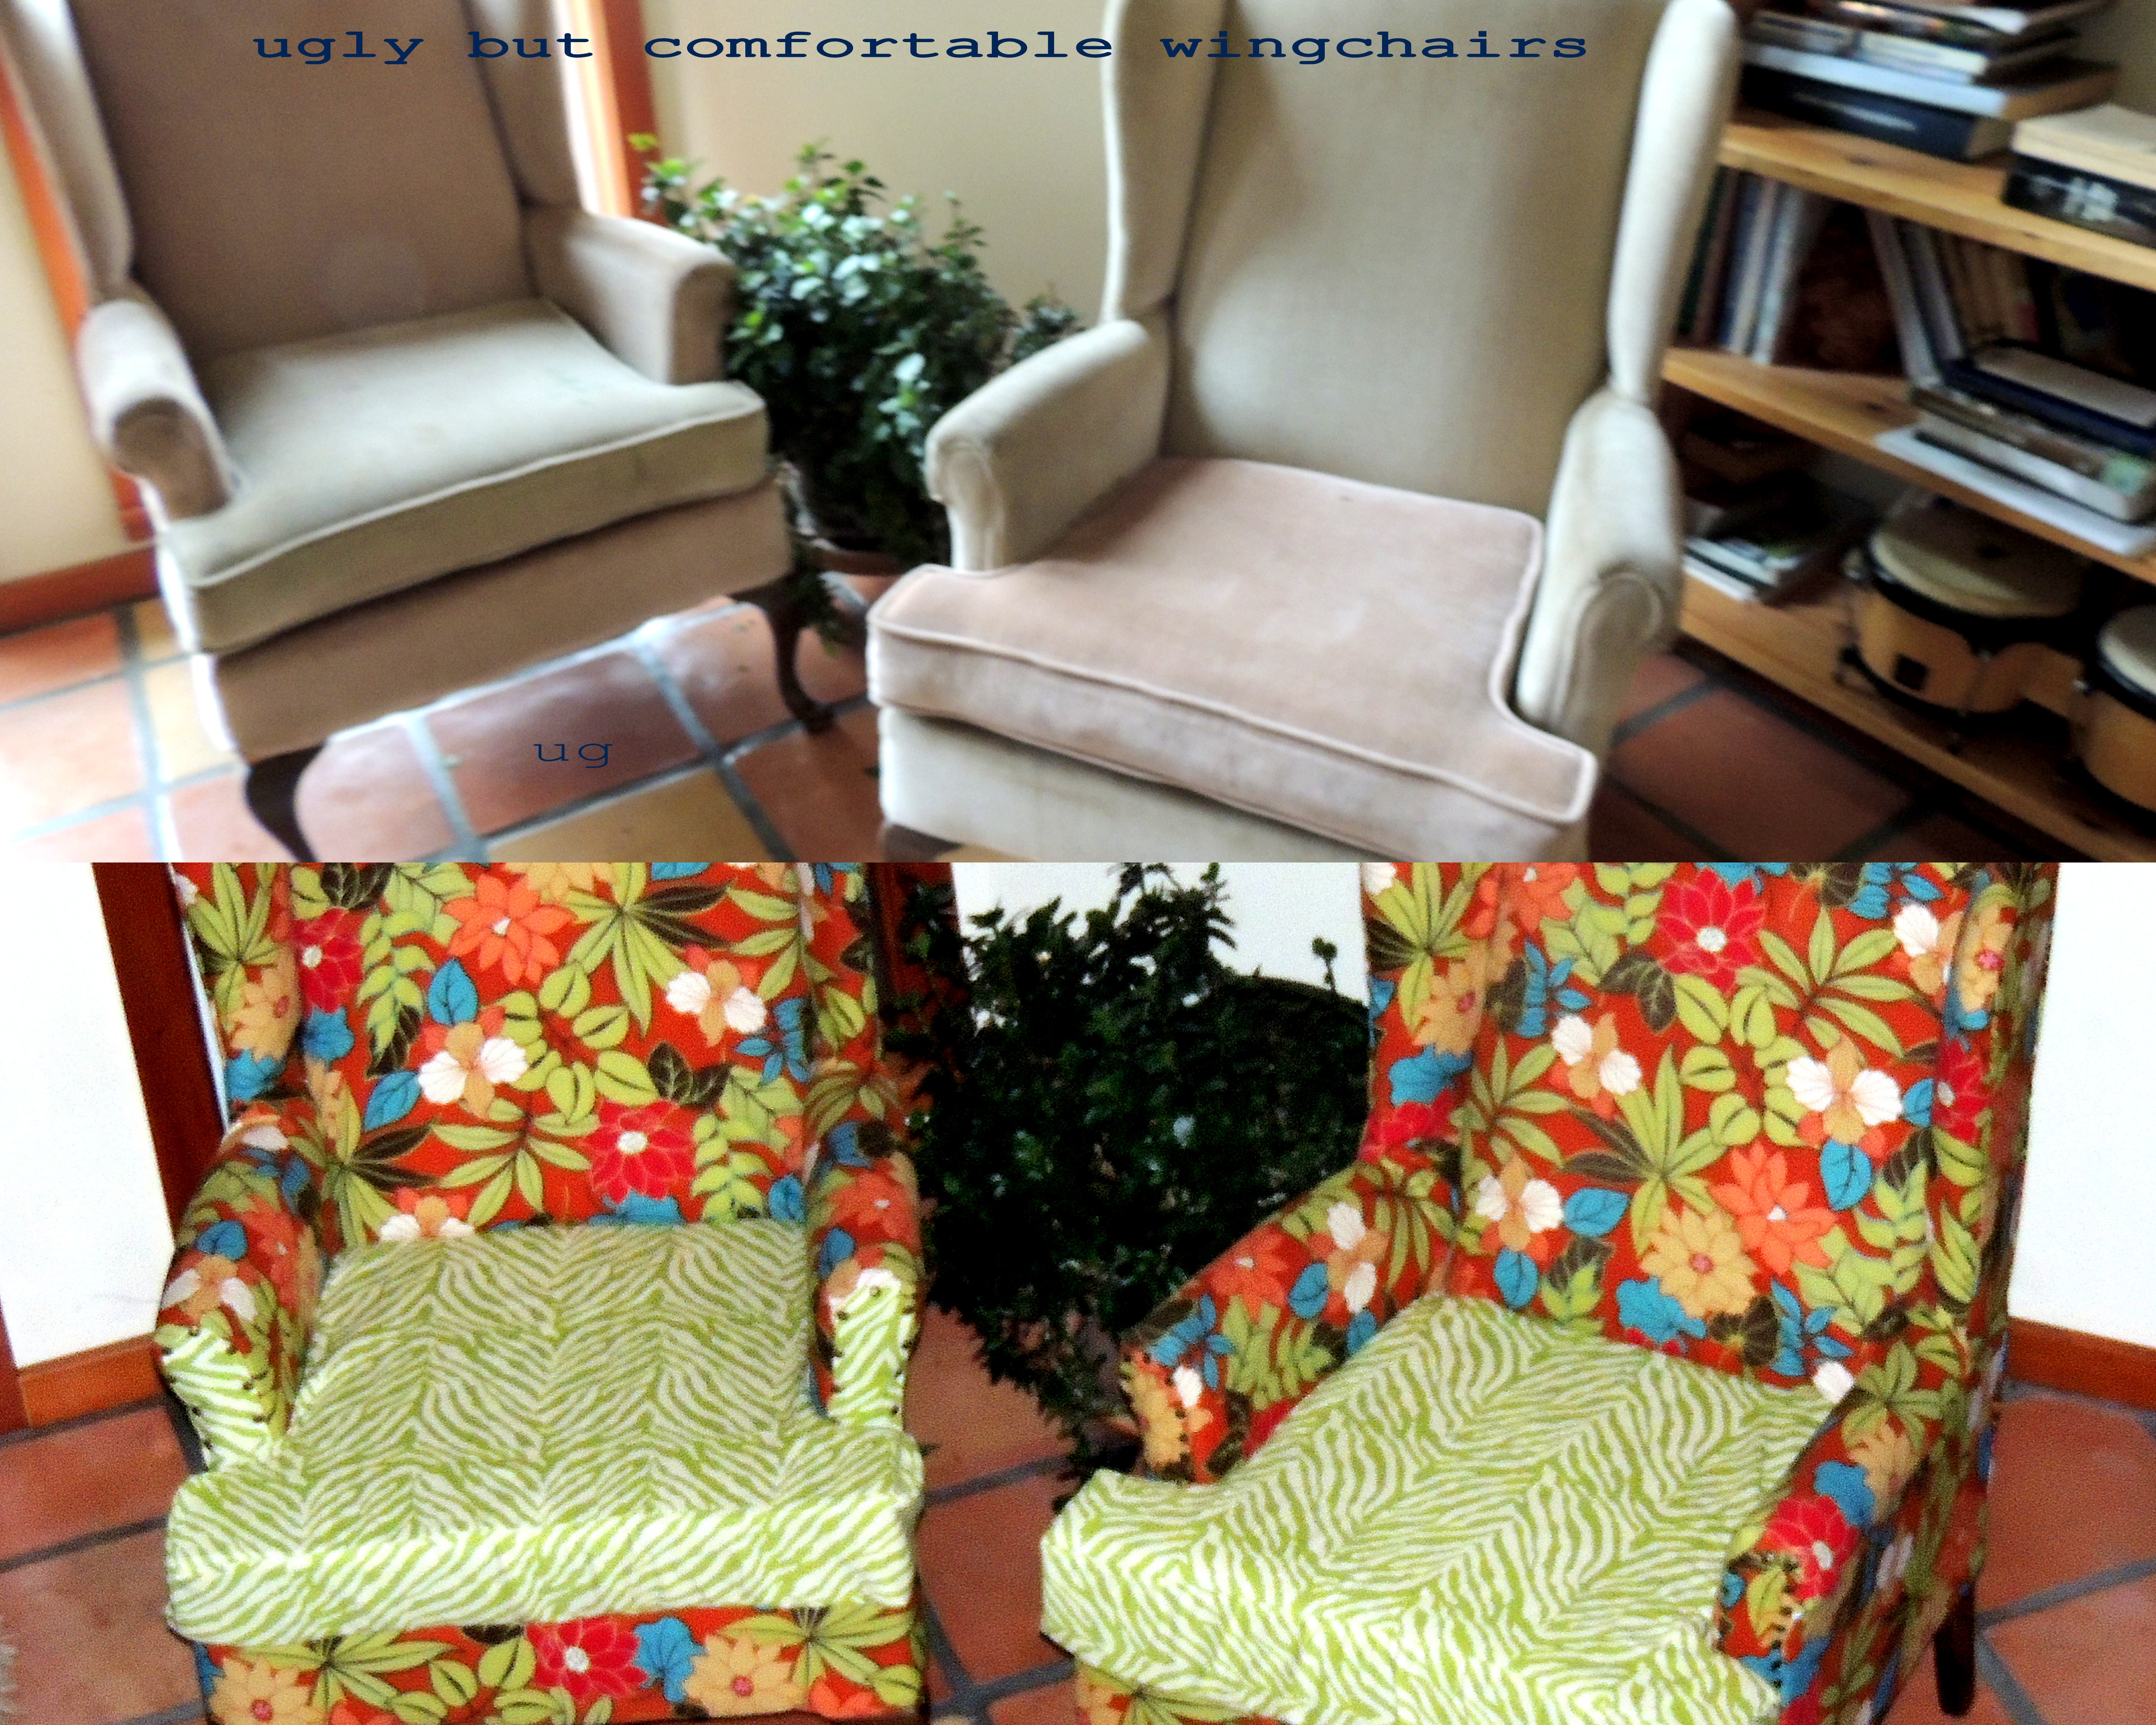 If You Are A Perfectionist Or A Professional, You Probably Will NOT Like  This Whole Situation! But If You Want To Quickly Recover A Wingback Chair  With Very ...